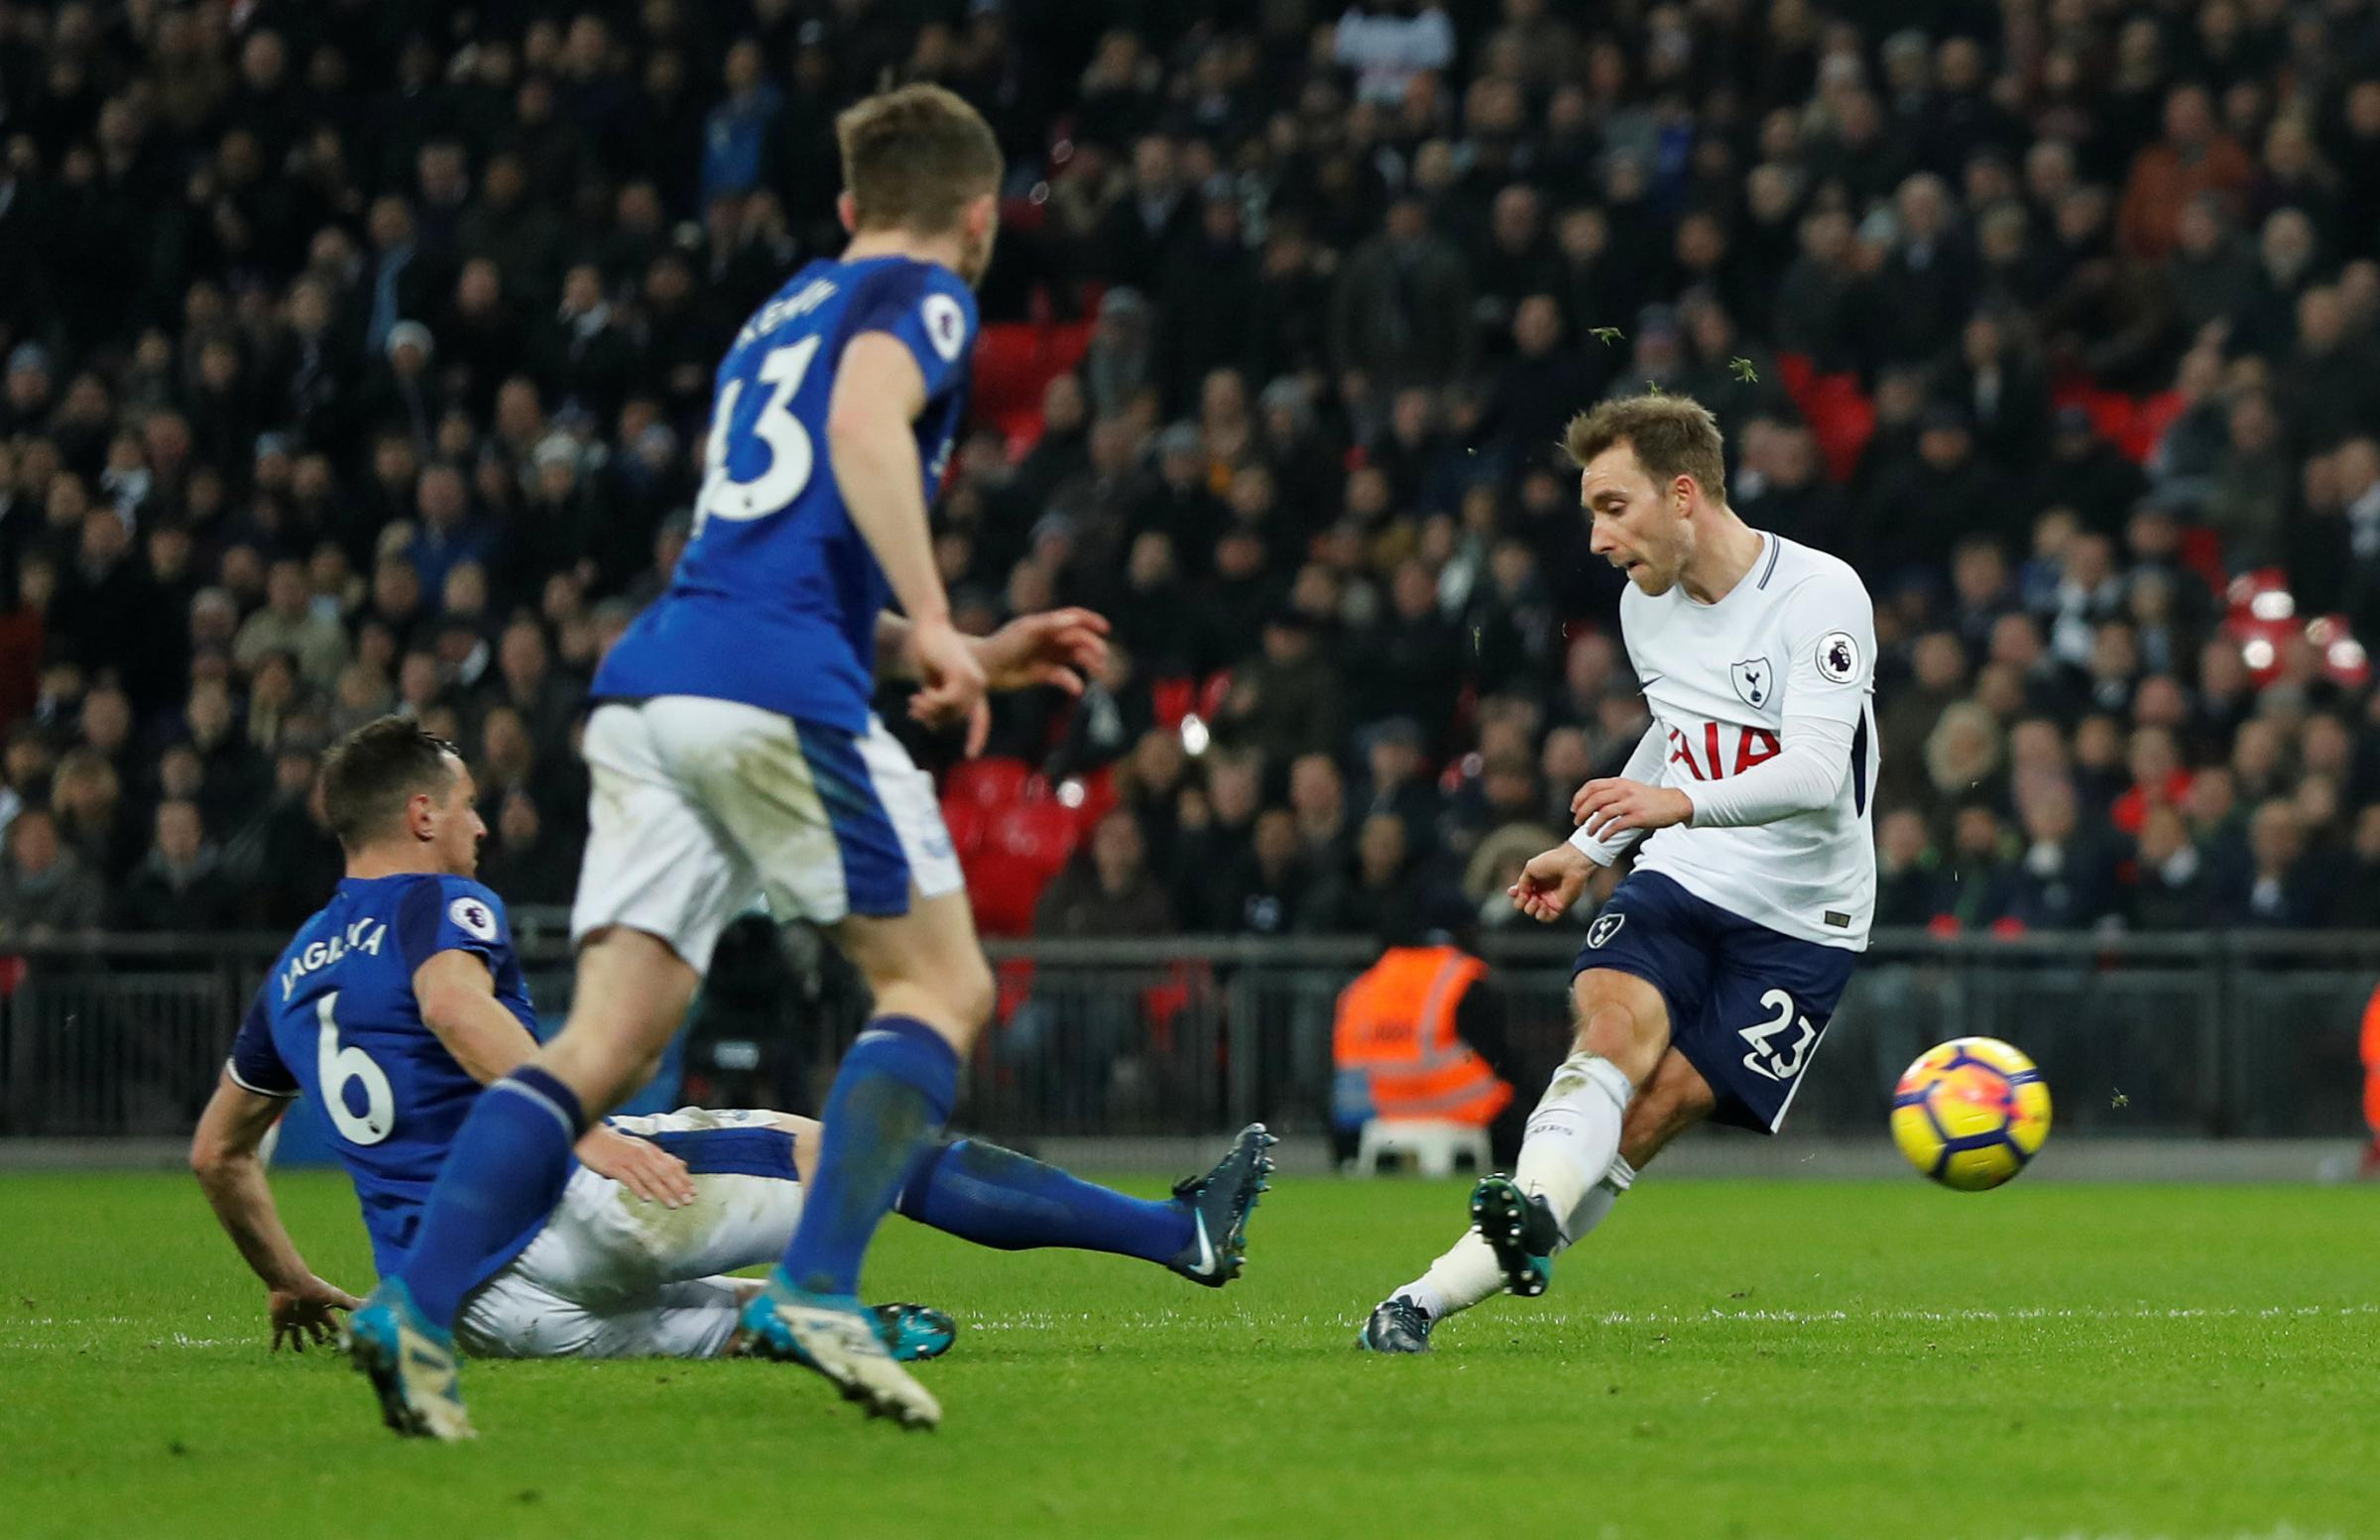 Christian Eriksen could return for Spurs at Old Trafford. Picture: Action Images